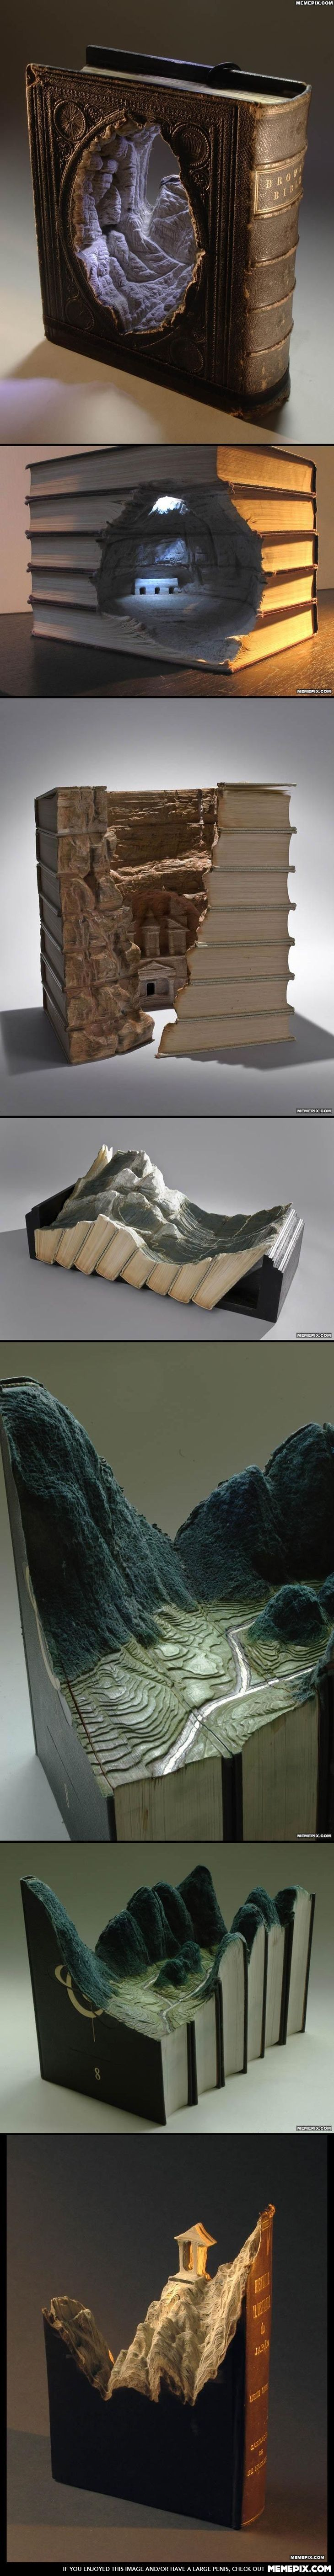 Amazing landscapes carved into books | How Do It Info